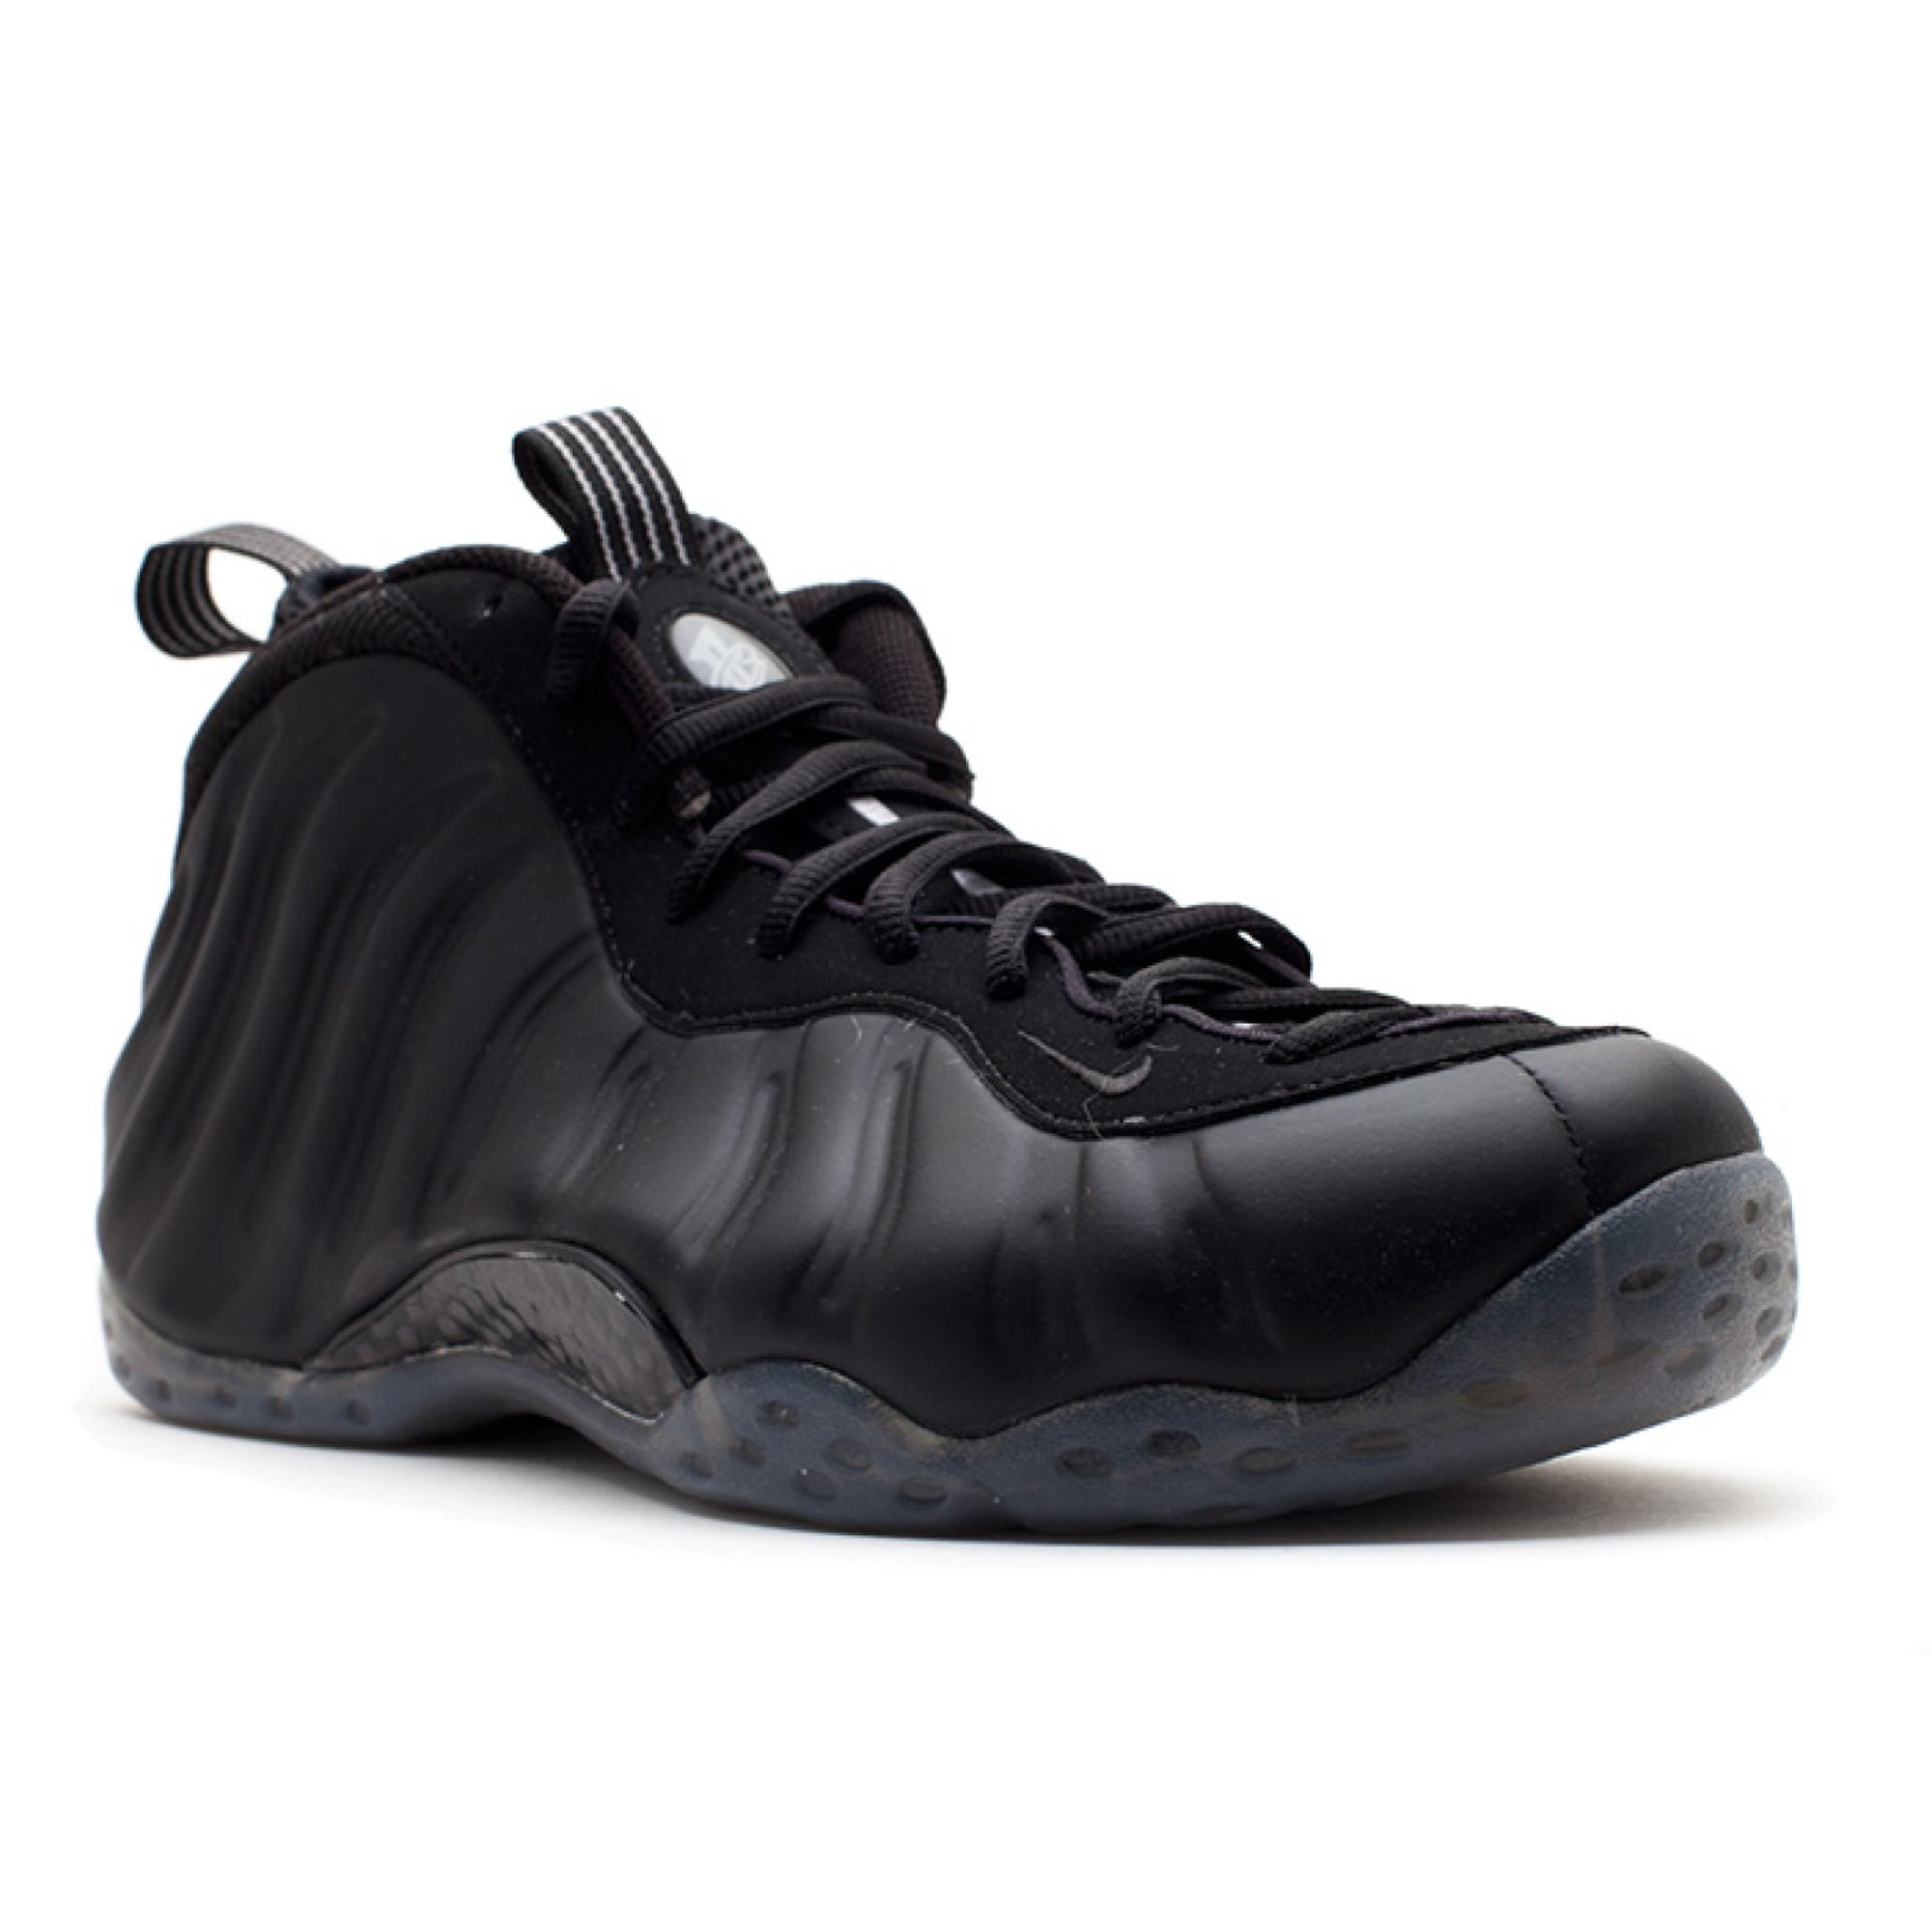 3c5dc7962c9 Nike - Men - Air Foamposite One  Stealth  - 314996-010 - Size 10.5 ...